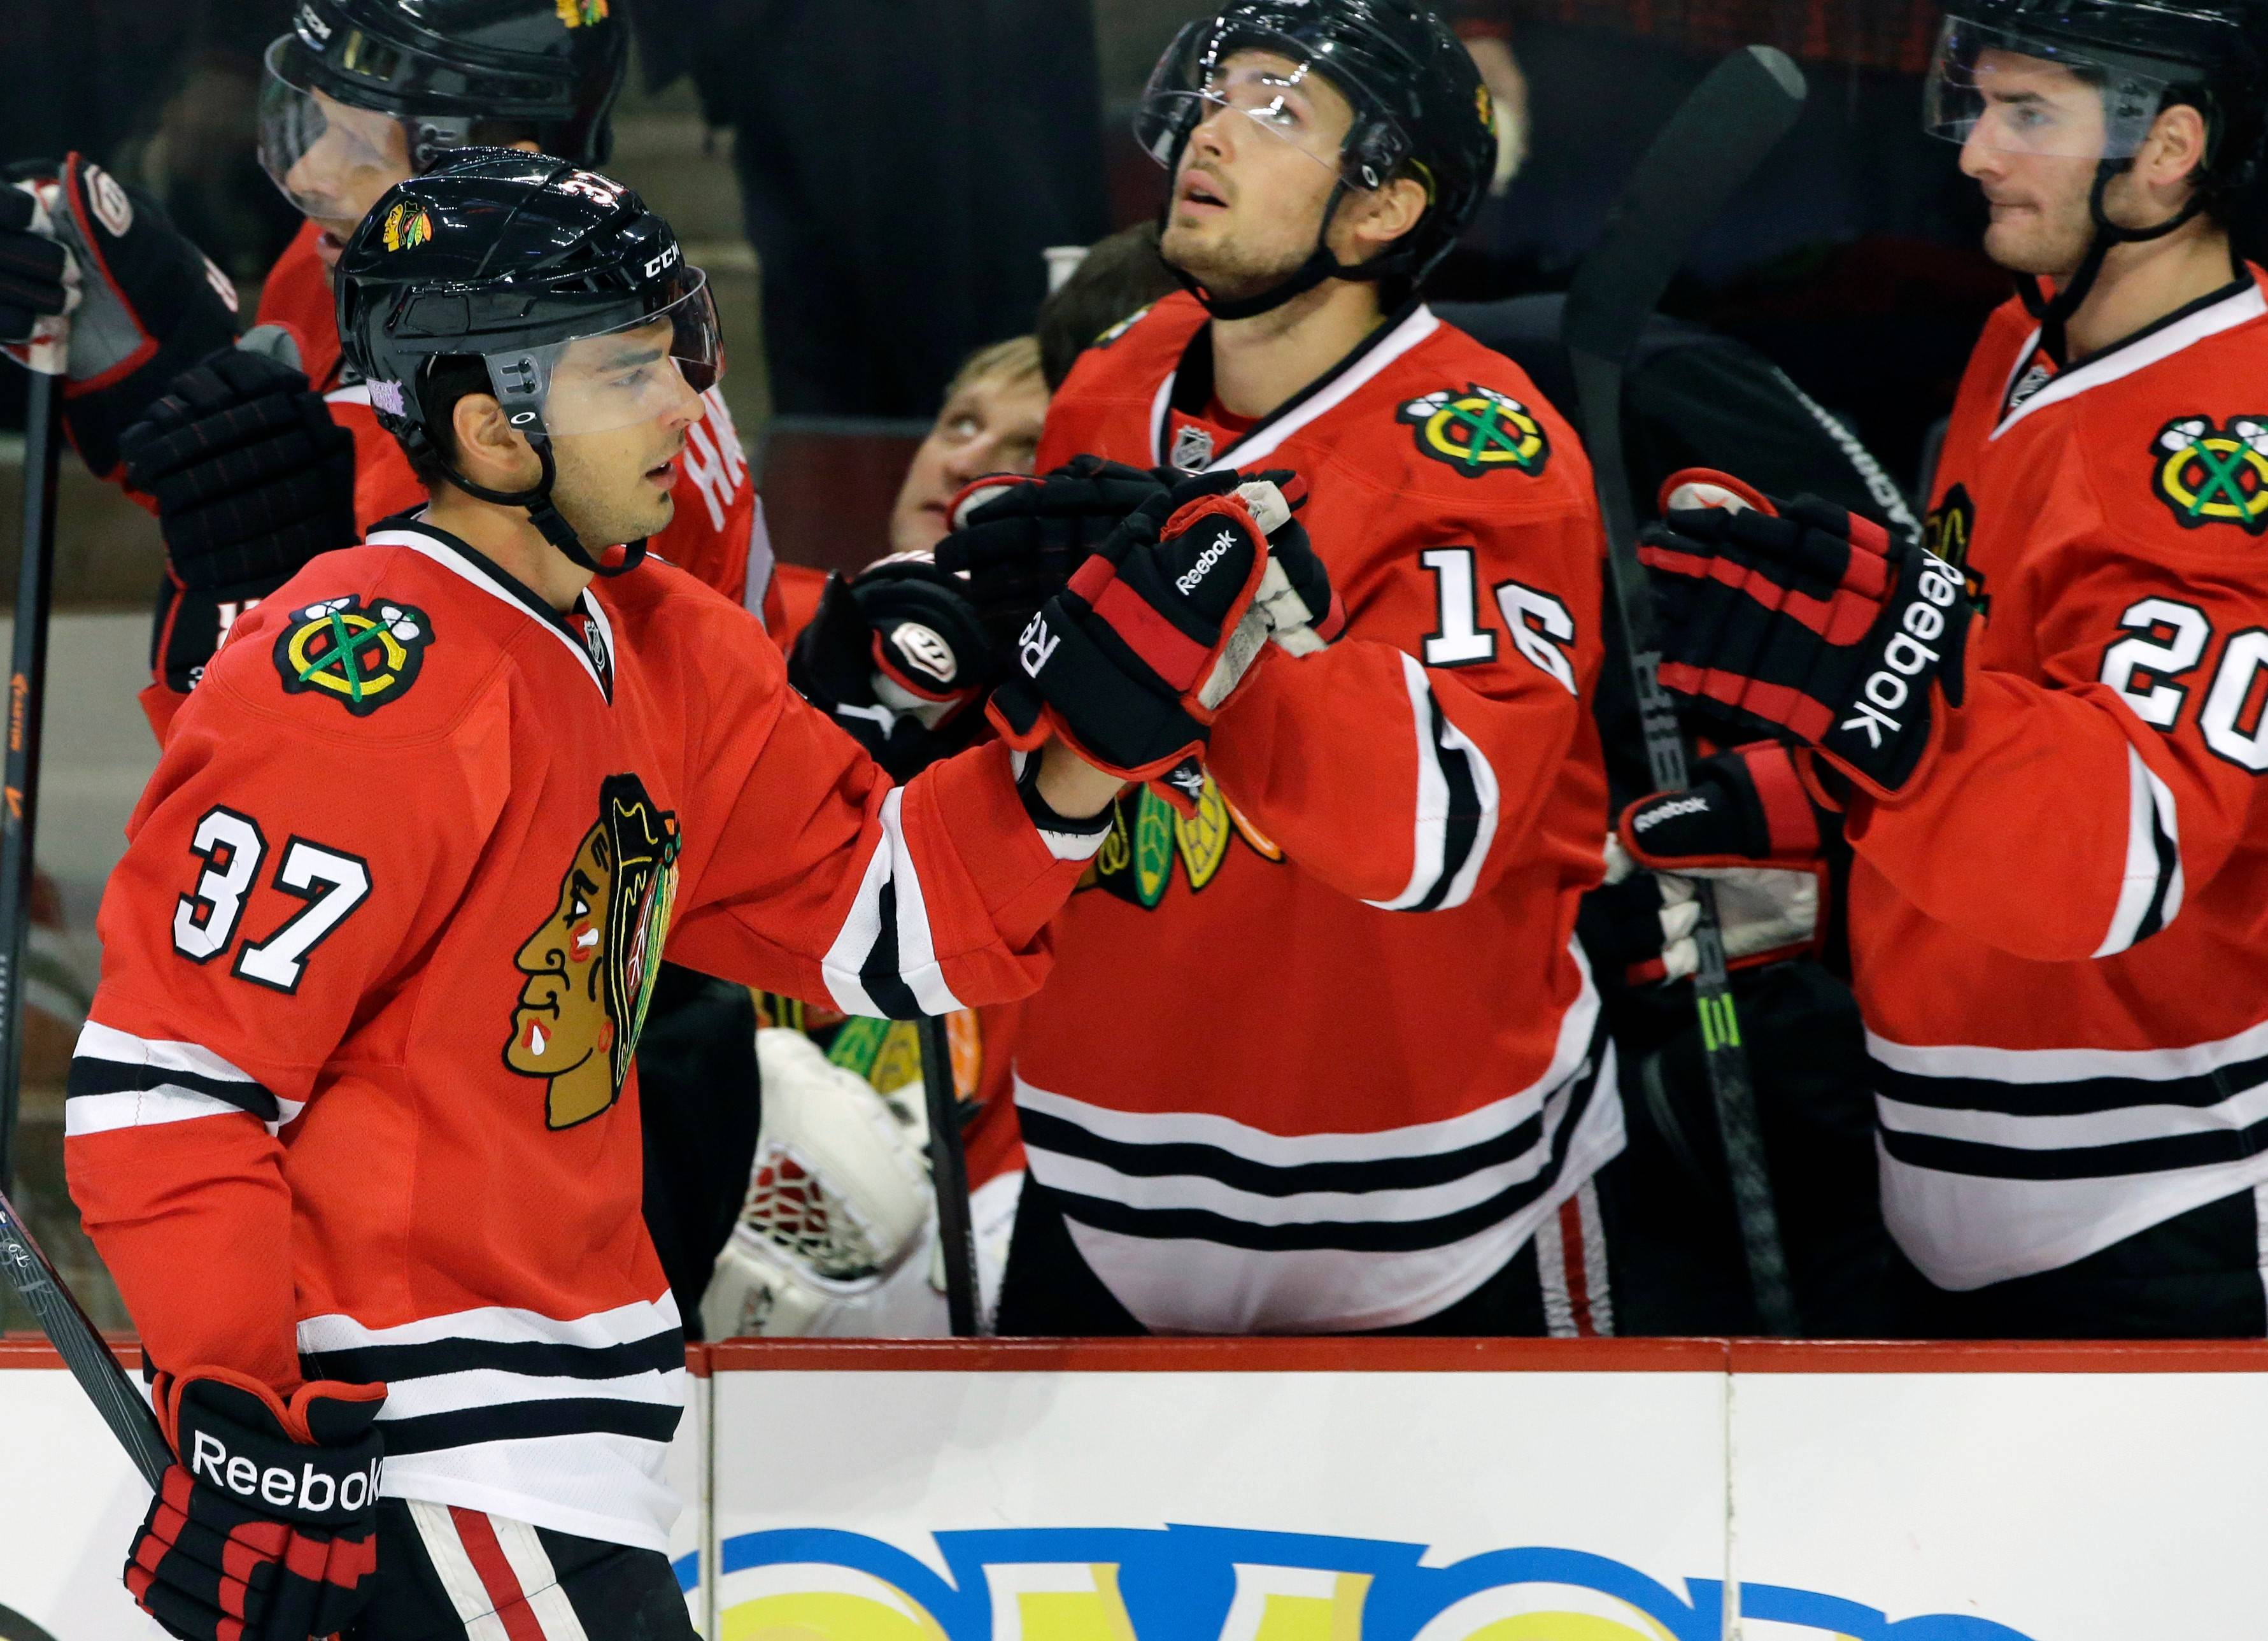 Chicago Blackhawks' Brandon Pirri (37) celebrates with teammates after scoring a goal during the first period of an Oct. 17 NHL hockey game against the St. Louis Blues in Chicago.